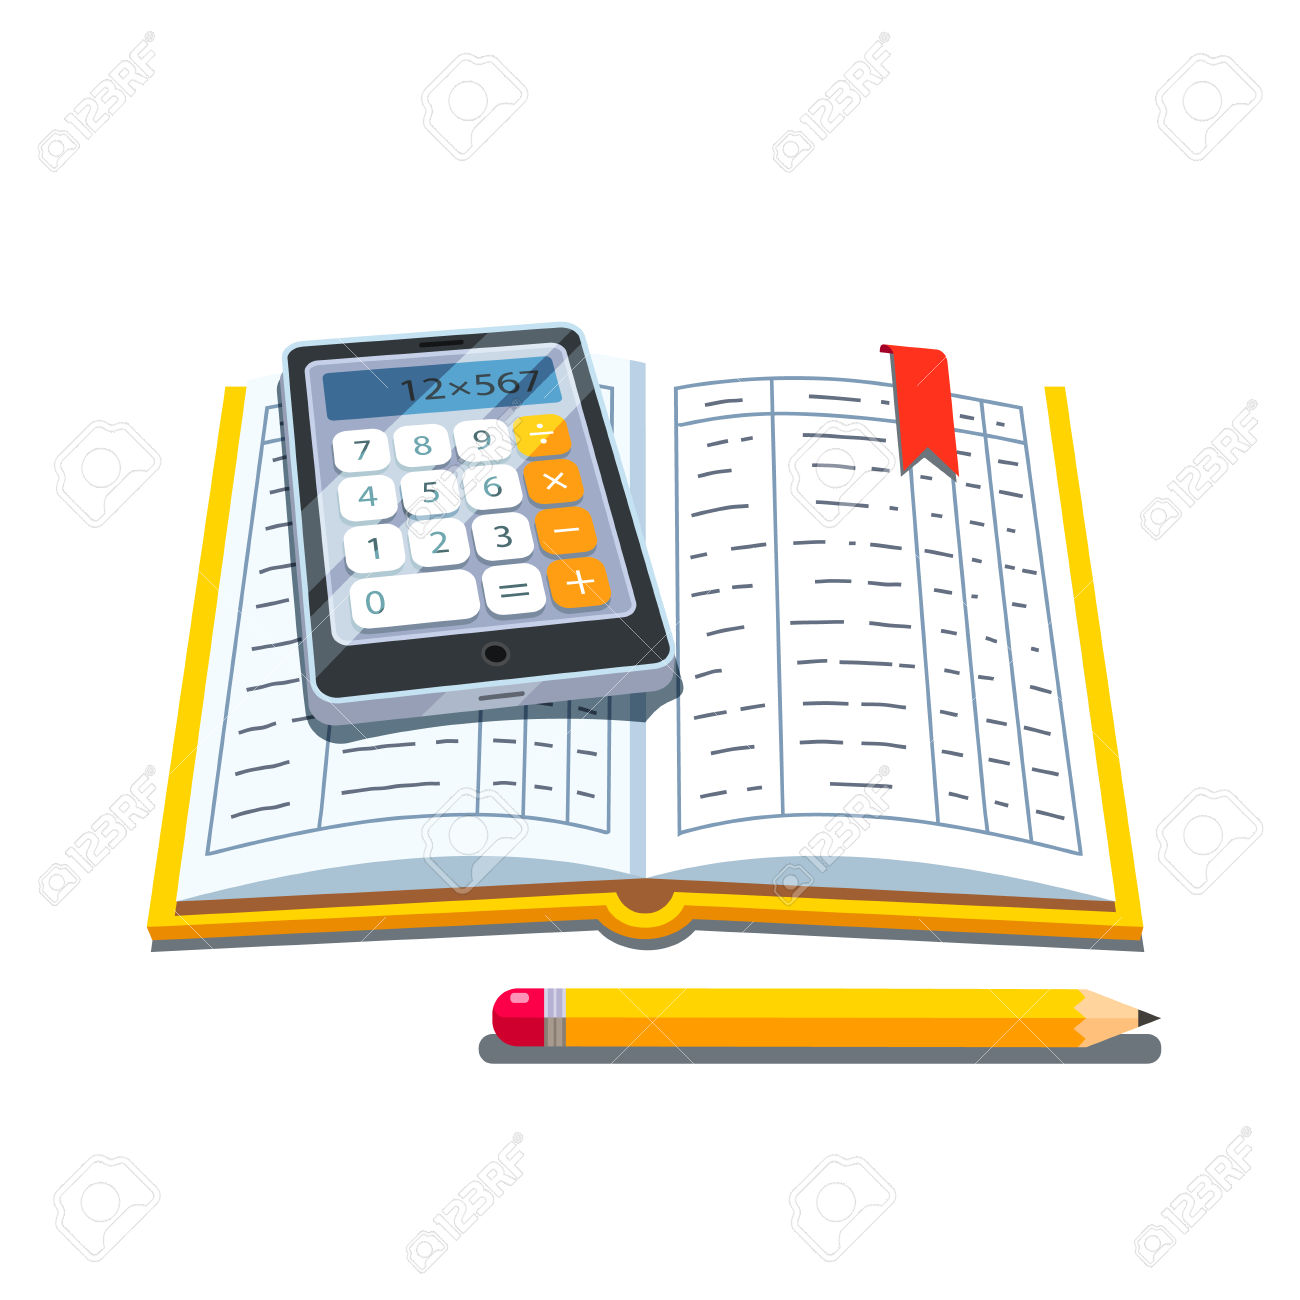 Accountant Cliparts | Free download best Accountant Cliparts on ... svg